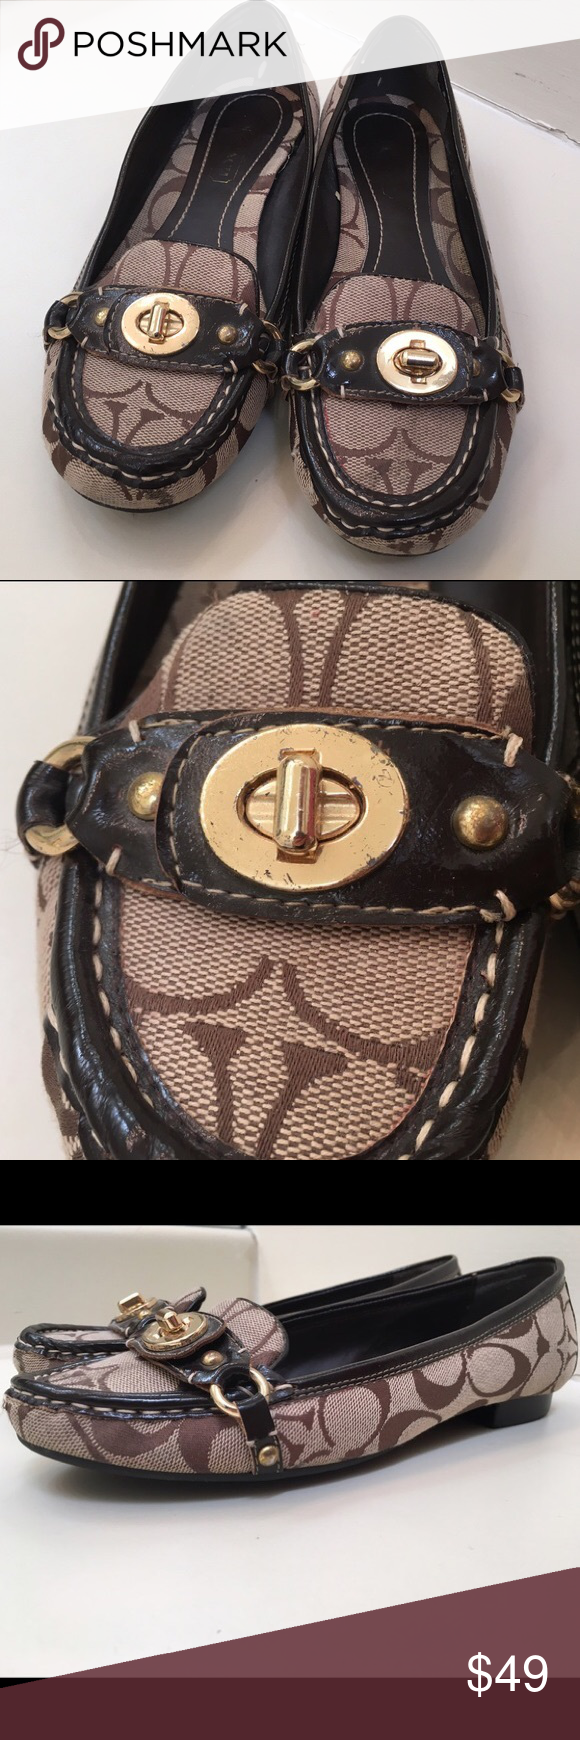 Classic Brown Gold Coach Loafers Size 8 Classic brown Coach loafers, size 8. These are in good condition but the metal has some scratches (see photos). Coach Shoes Flats & Loafers